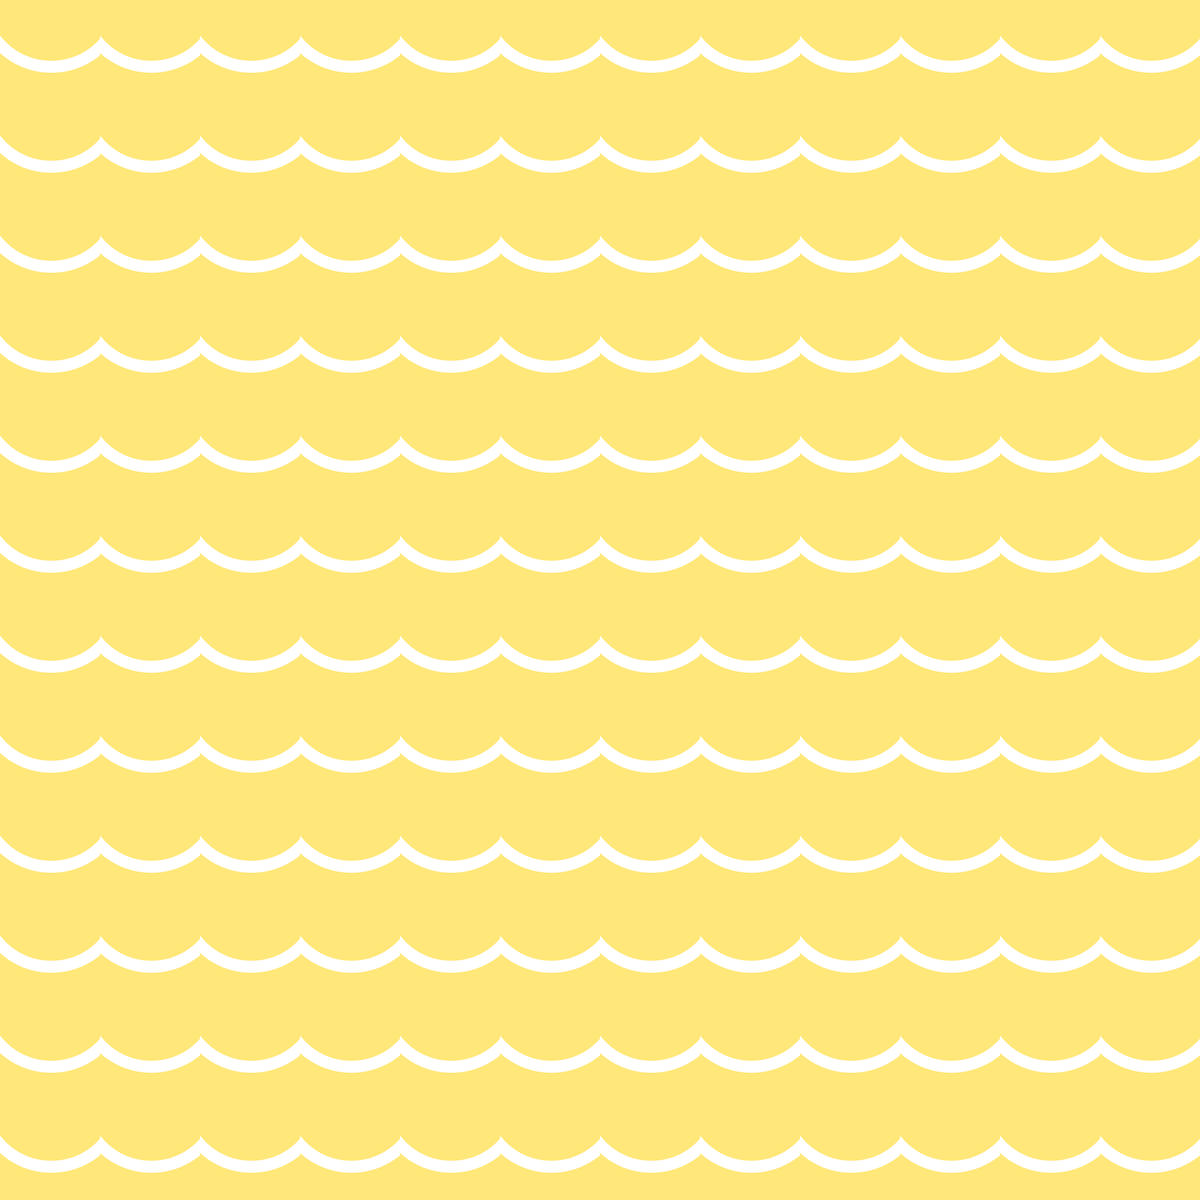 Scrapbook paper - Yellow And White Scrapbooking Paper Printable Bright Yellow Gift Wrapping Paper Freebie Background